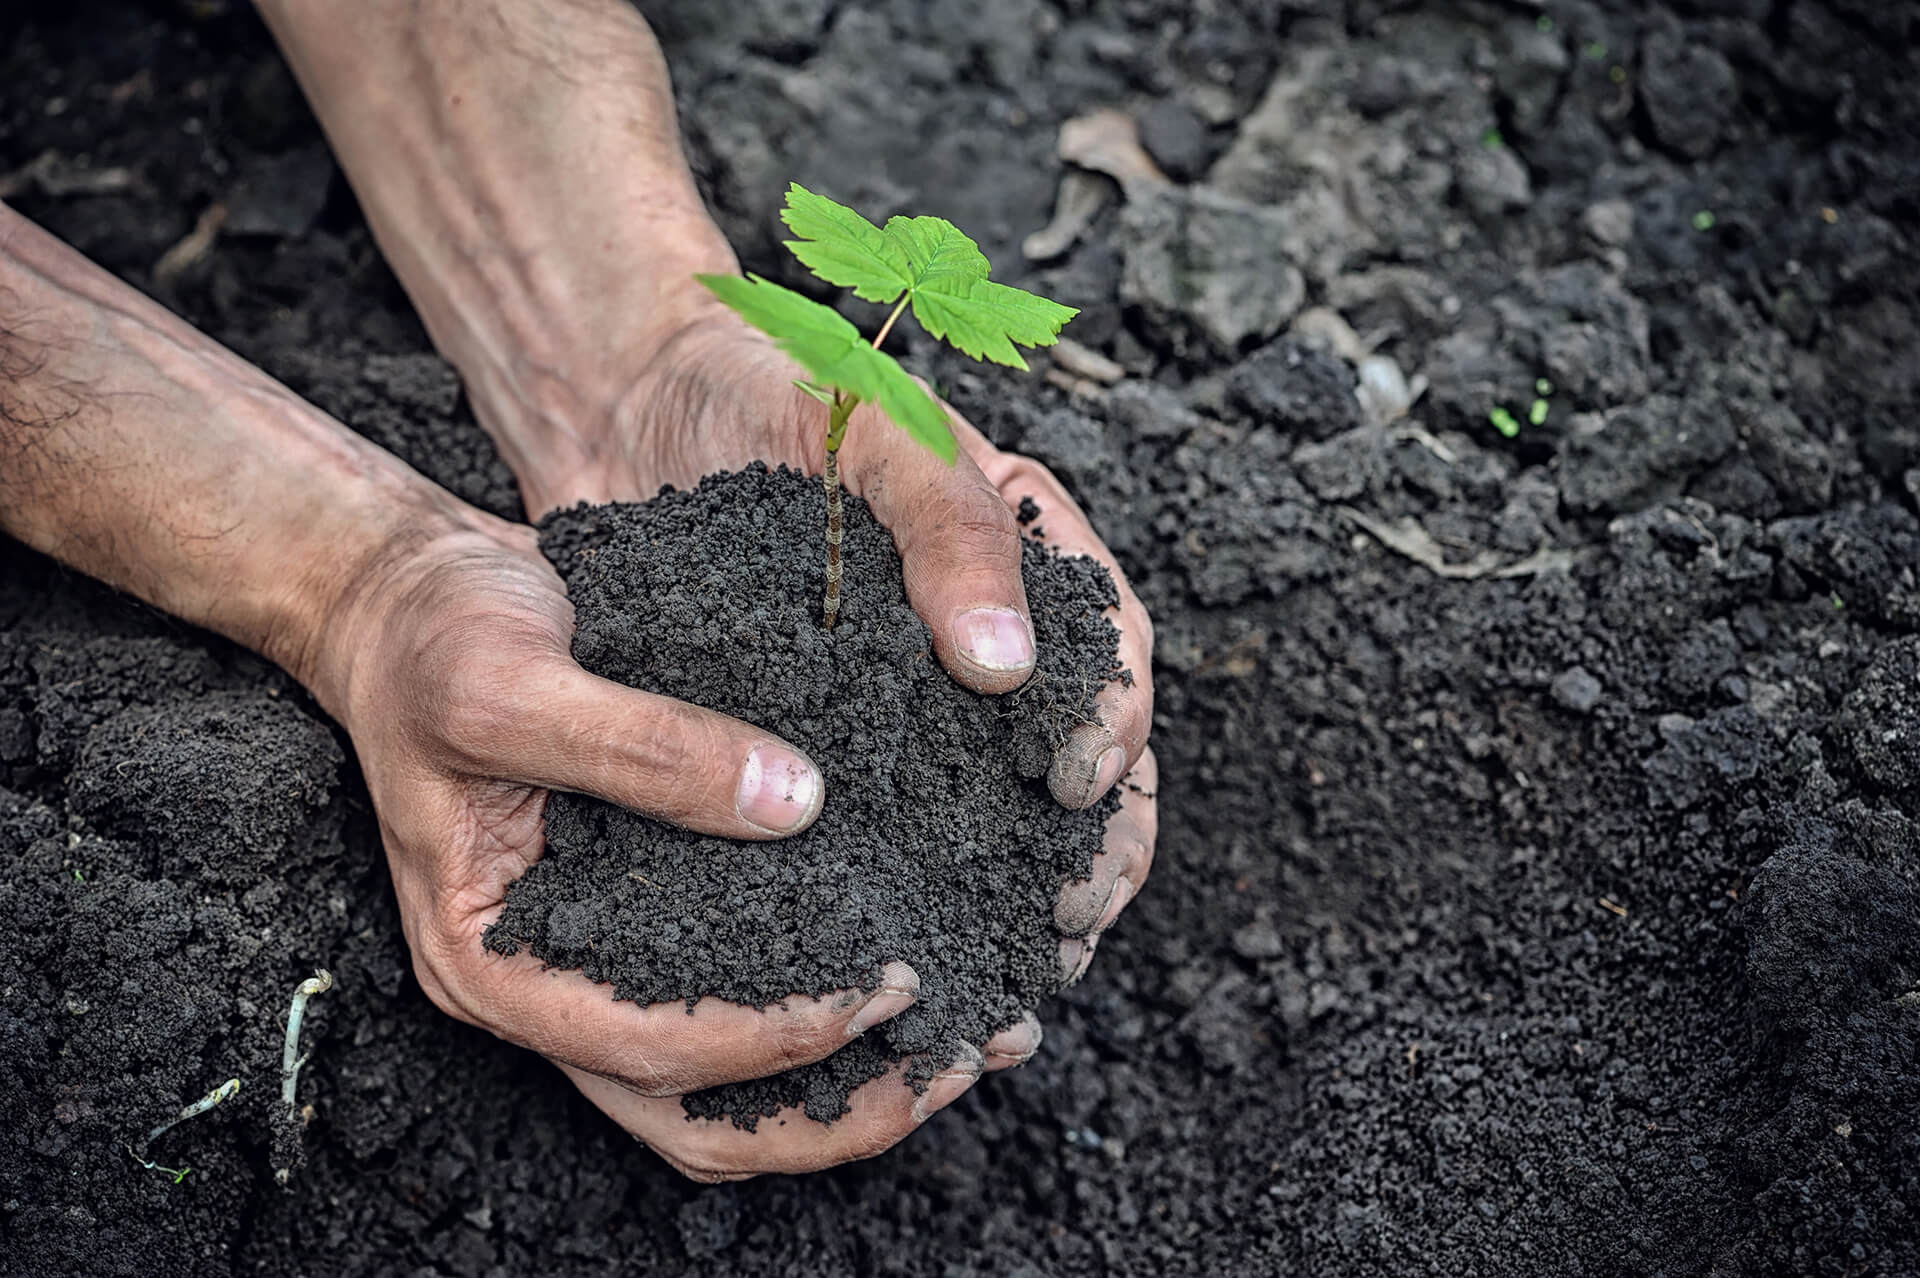 hands-holding-young-plant-with-soil-P64QKQH-1.jpg